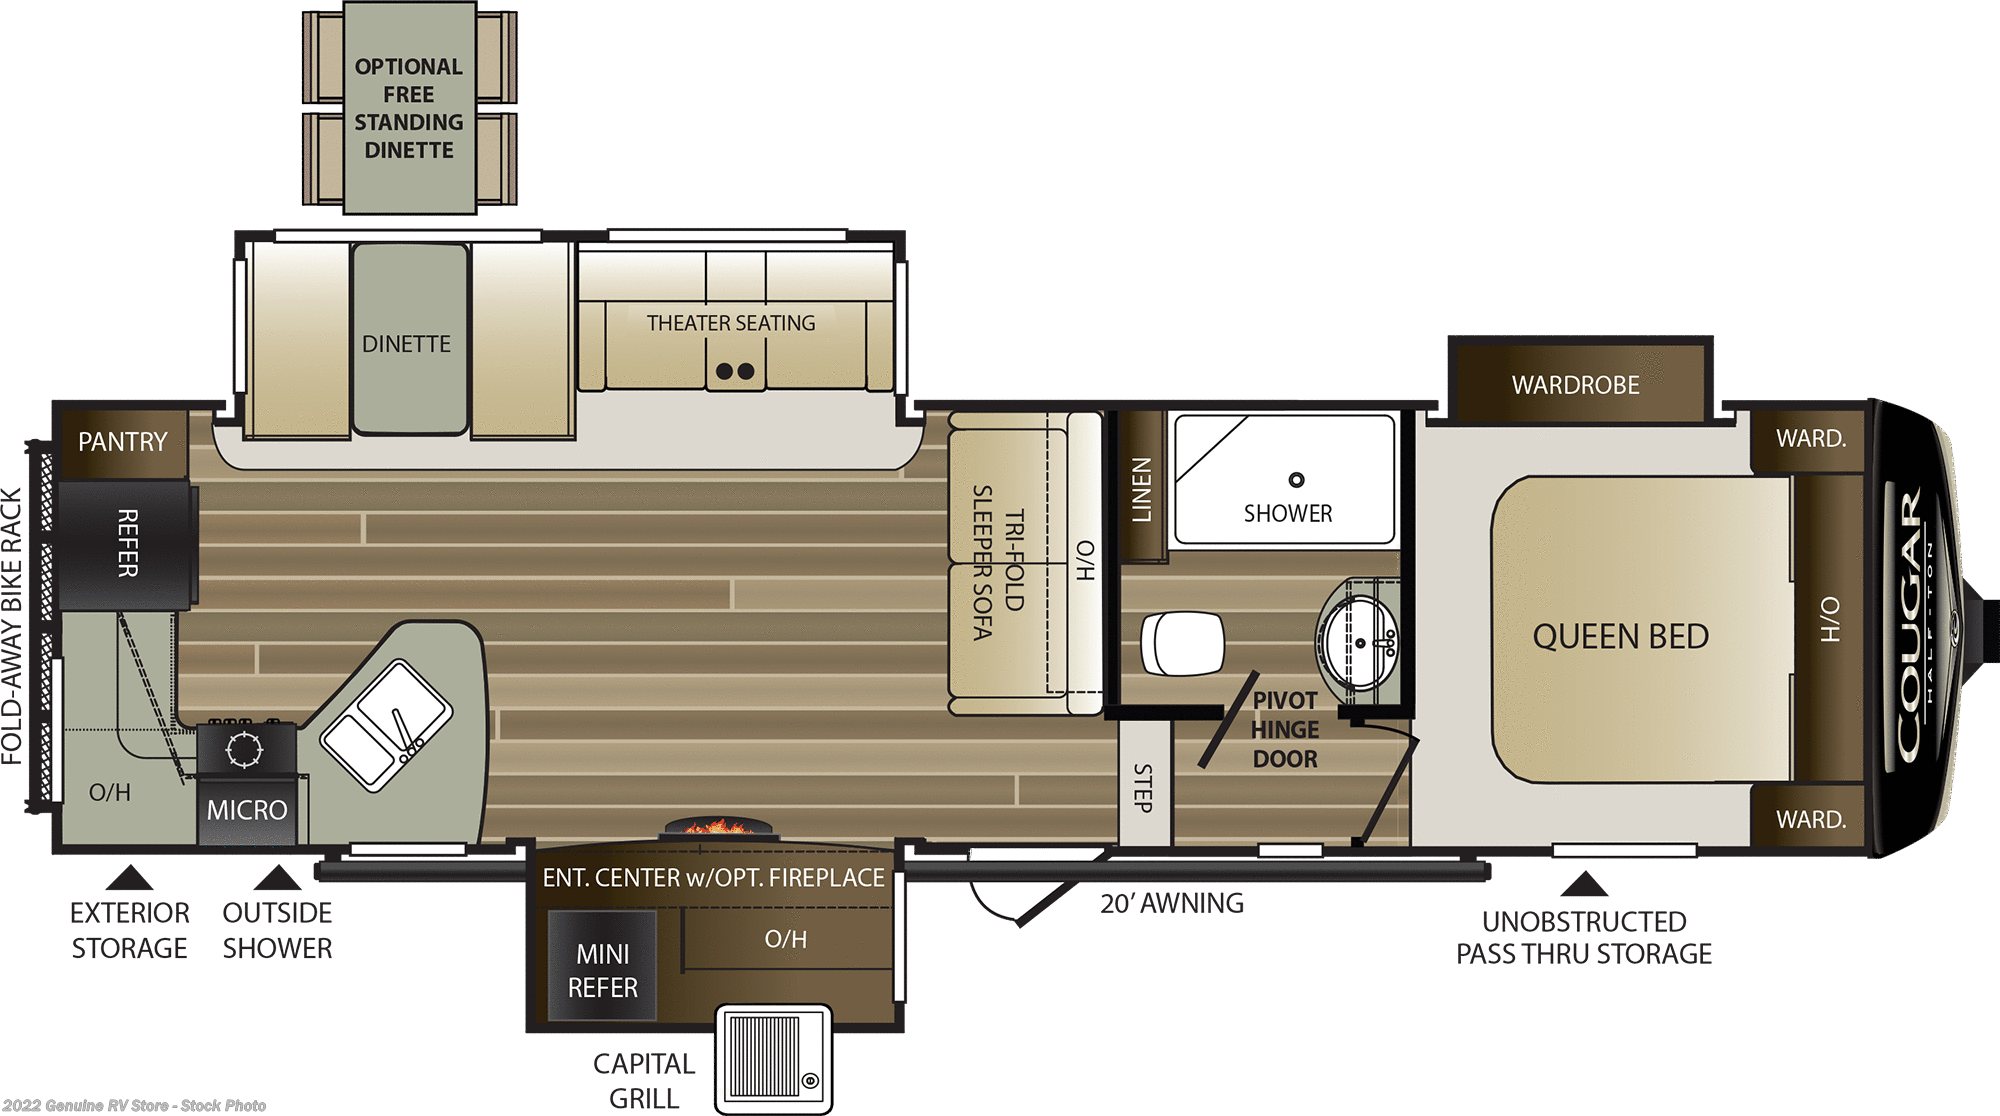 2019 Keystone Rv Cougar 29rks For Sale In Nacogdoches Tx 75964 Stove Wiring Diagram Previous